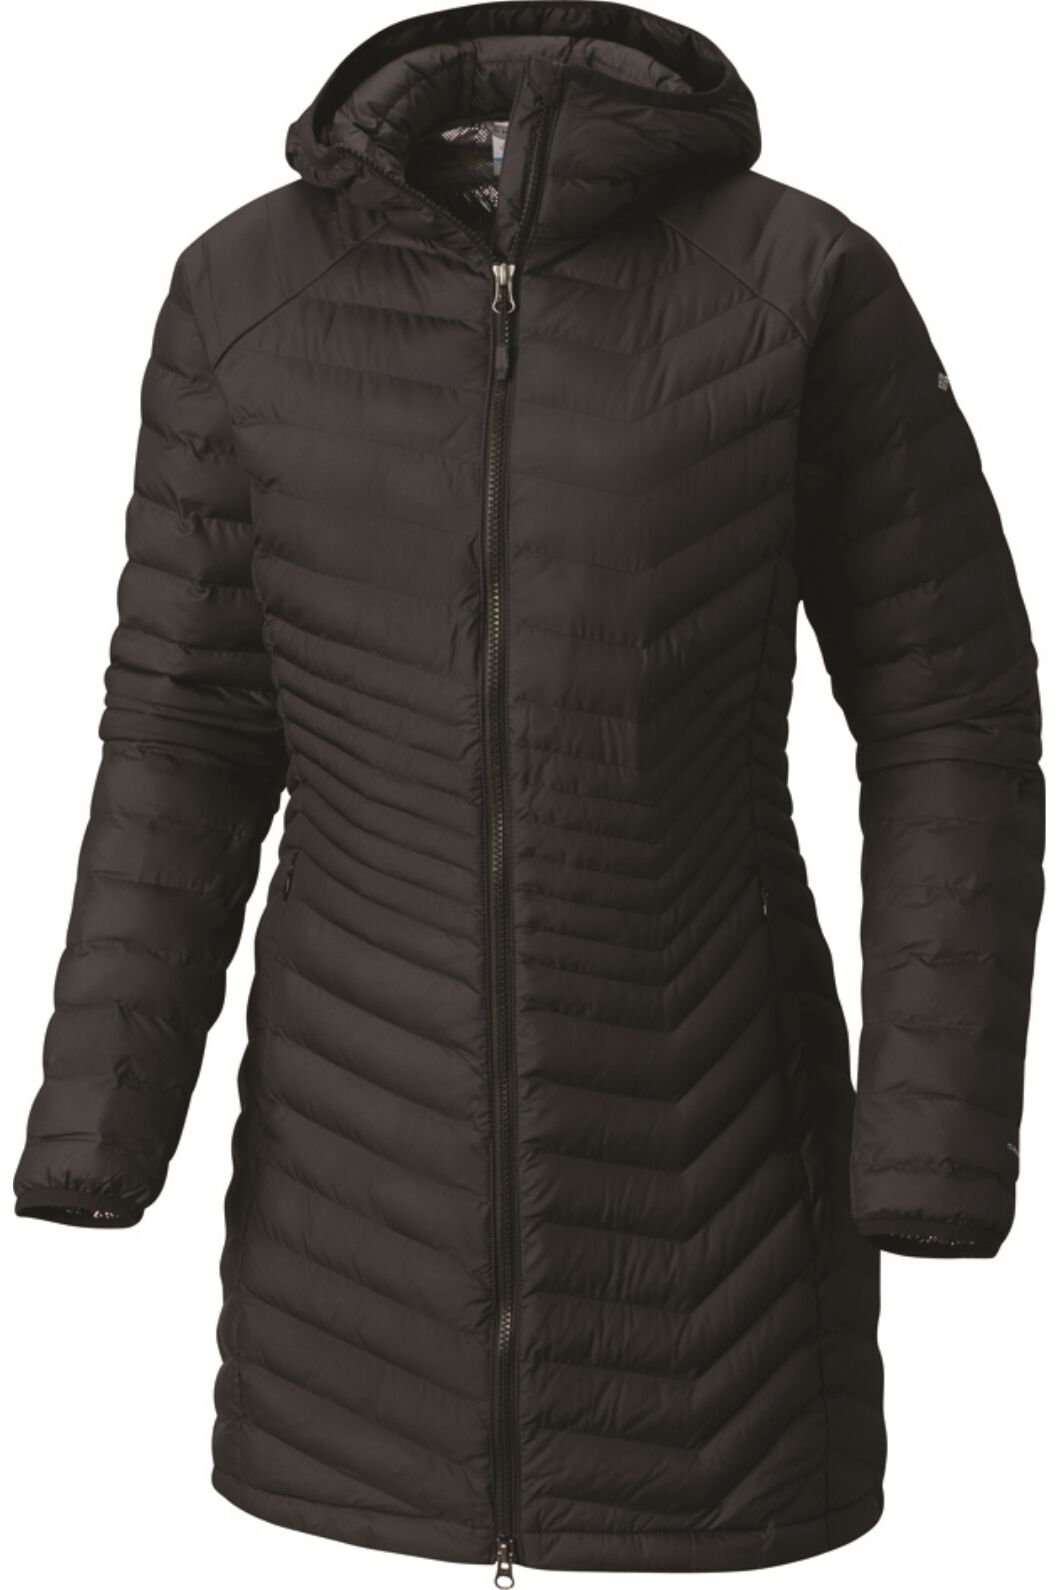 Columbia Women's Powder Lite Mid Jacket, Black, hi-res